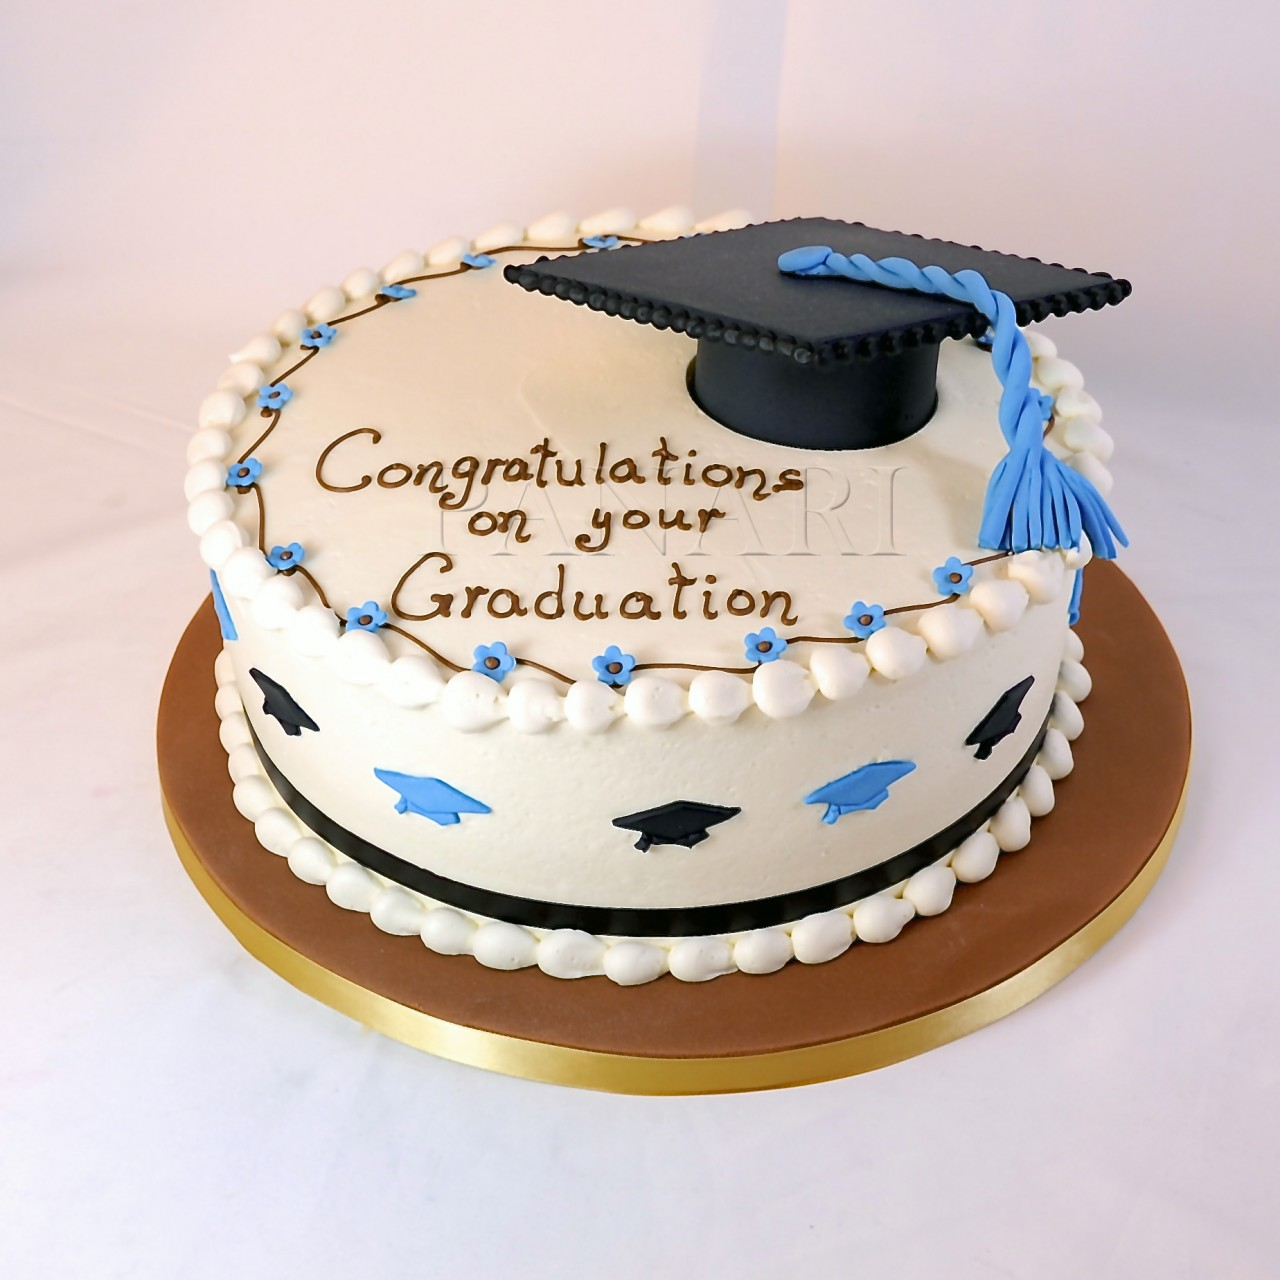 10 High School Graduation Cake Design CAKE DESIGN AND ...